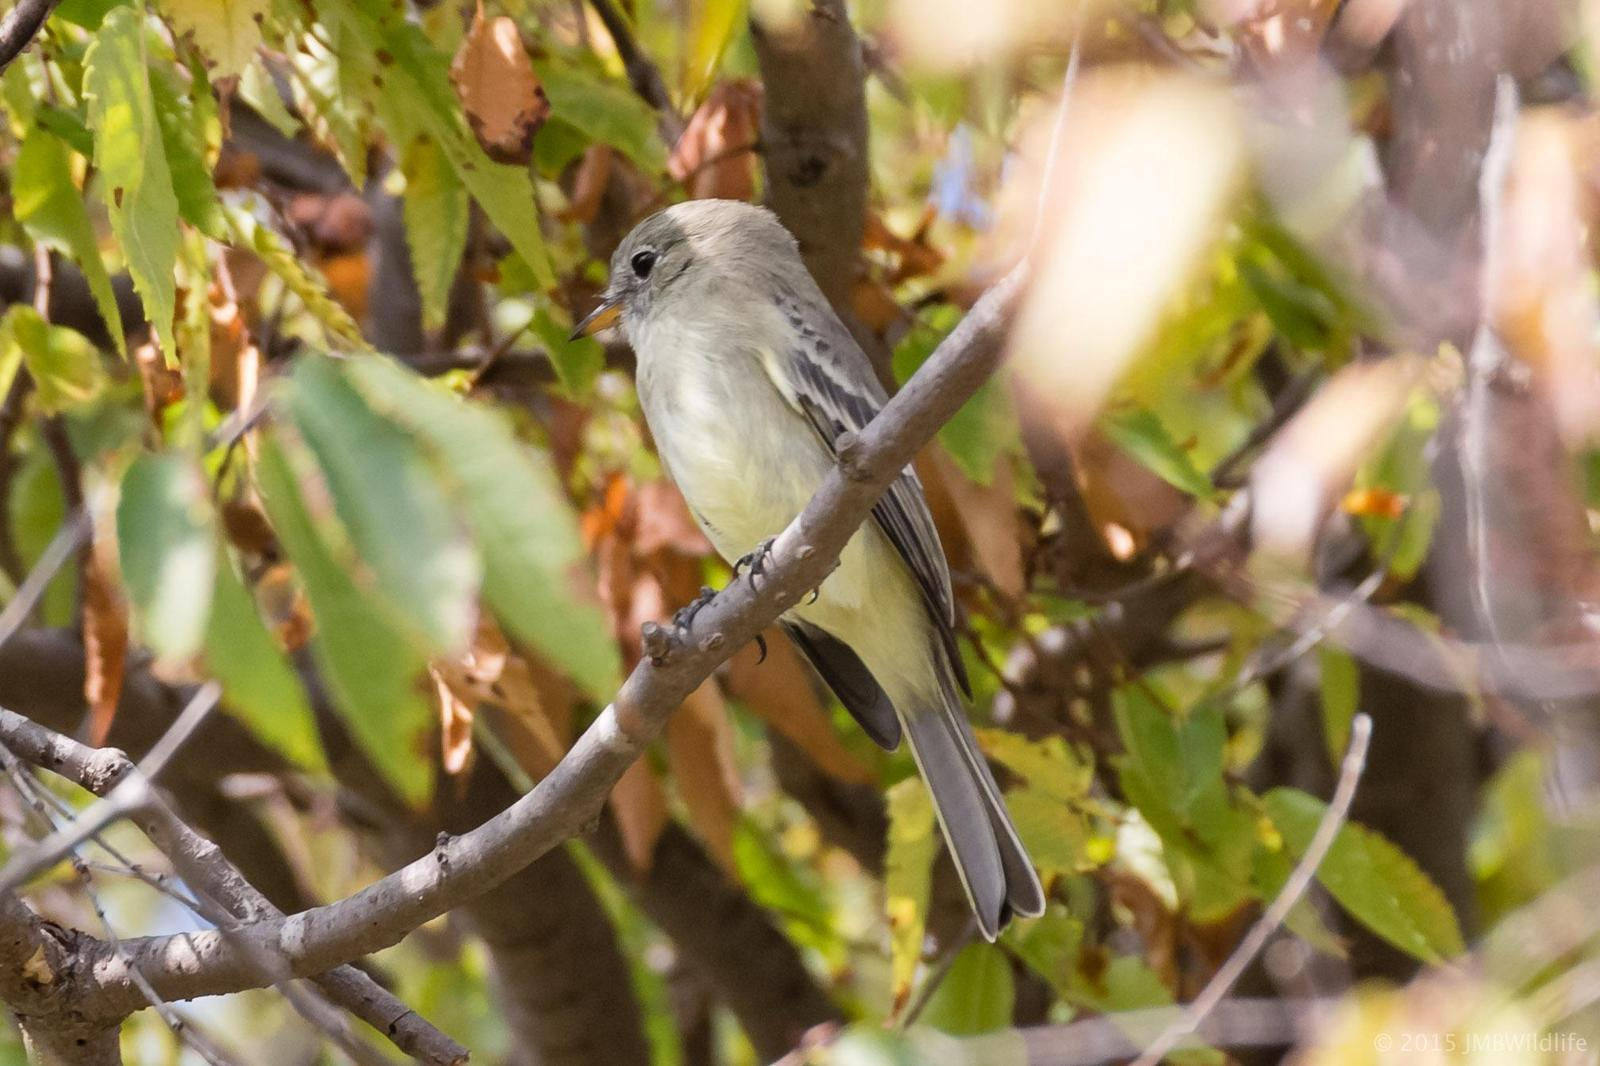 Gray Flycatcher Photo by Jeff Bray